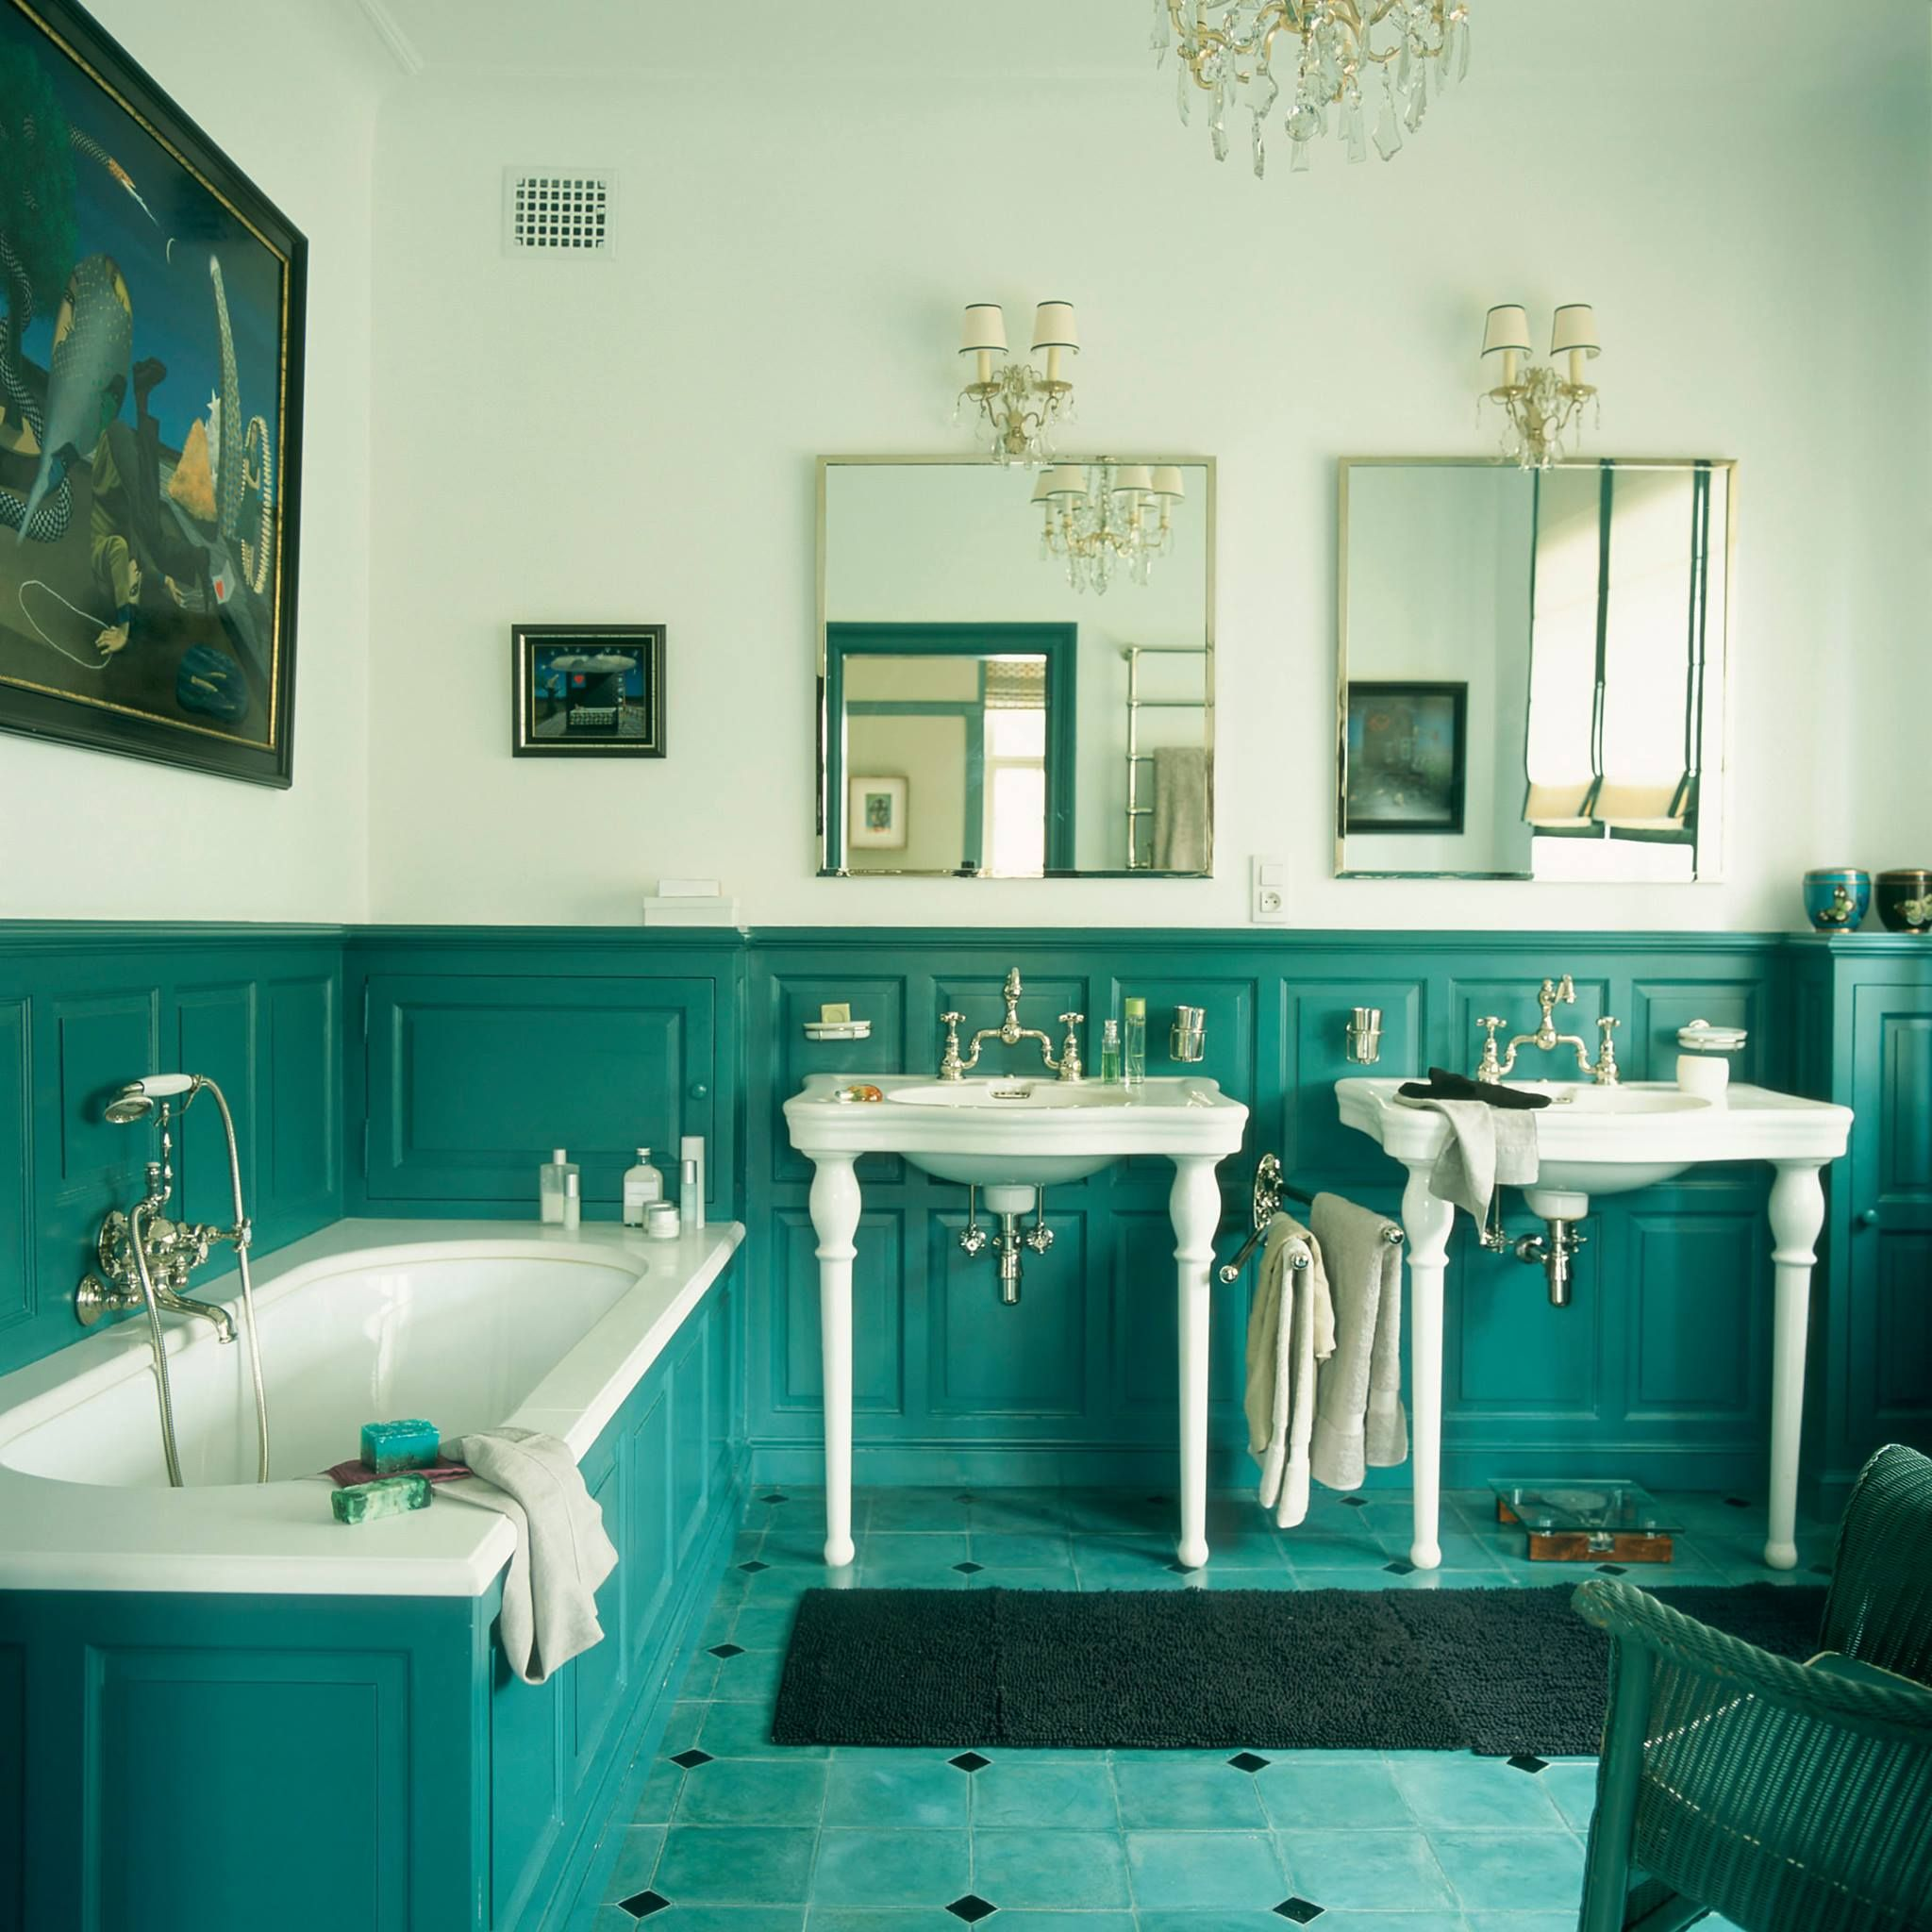 This antique Bathroom is really beautiful. The turquoise wooden wall ...